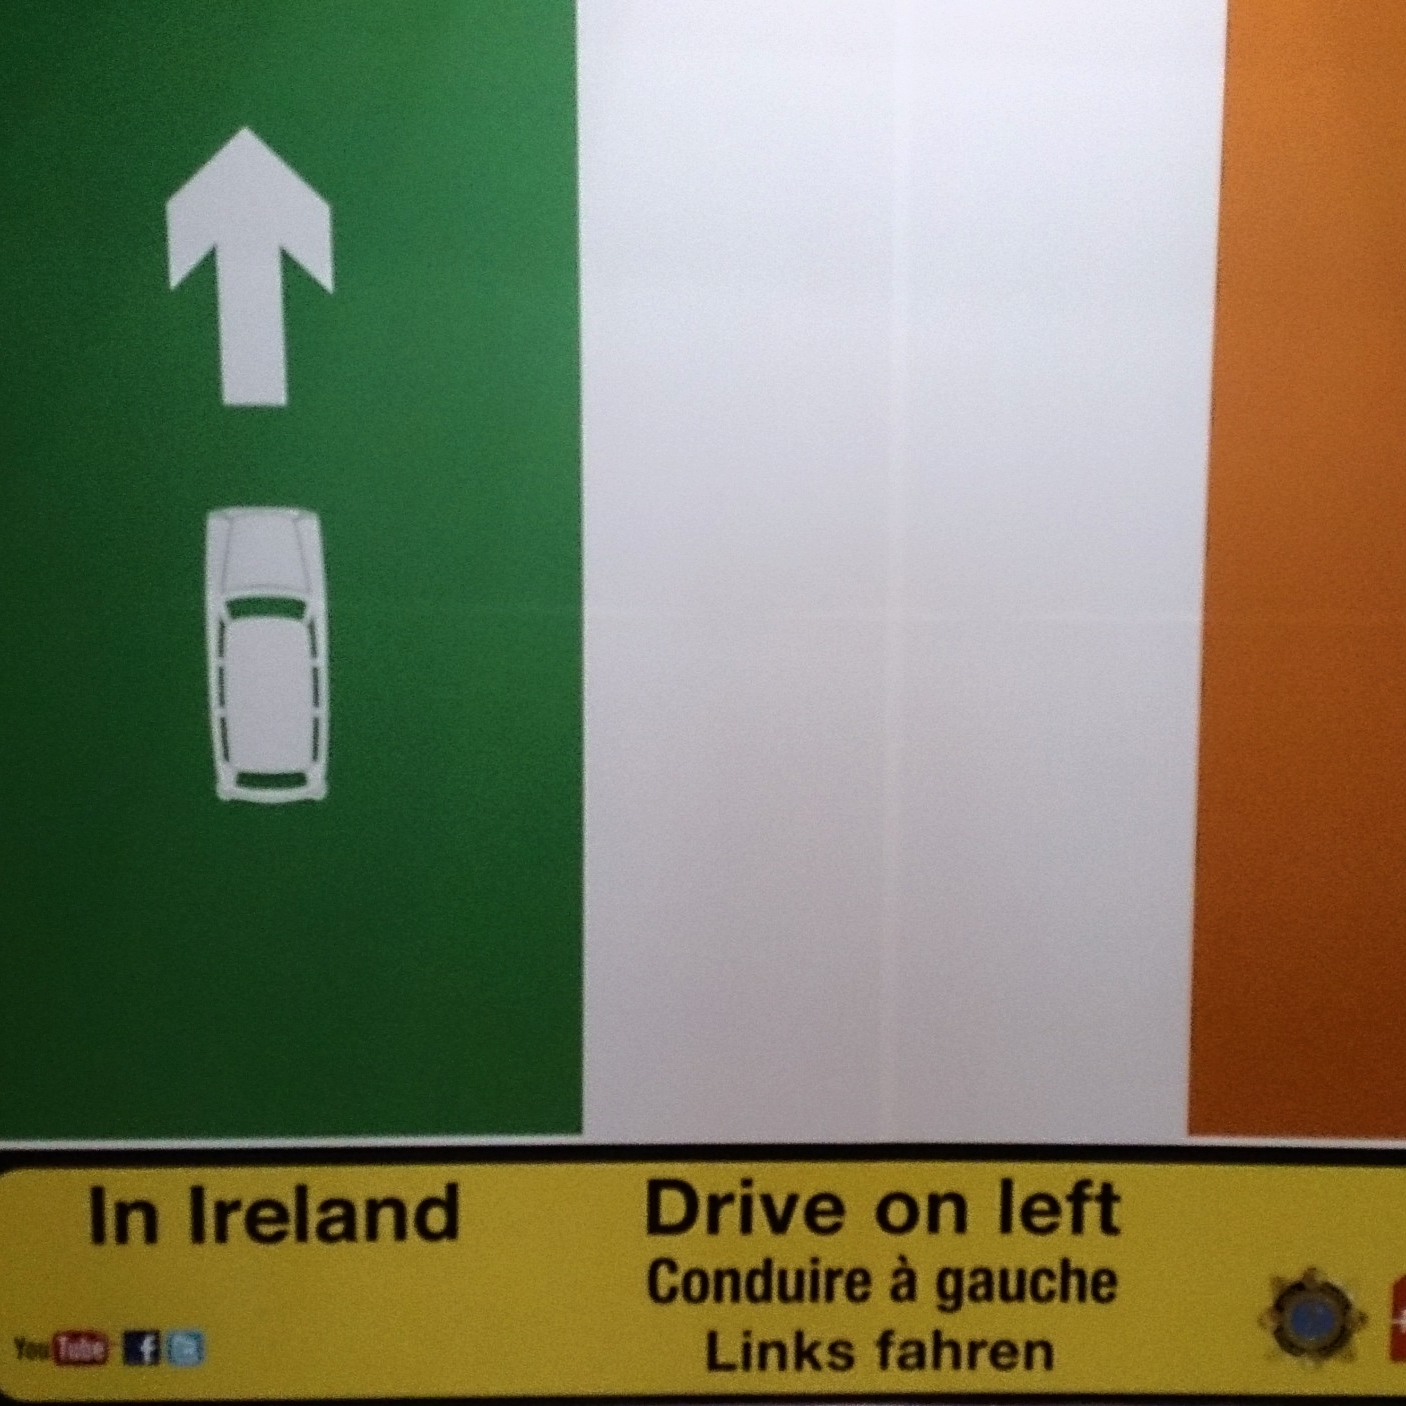 As soon as you get your passport stamped in Ireland you see this